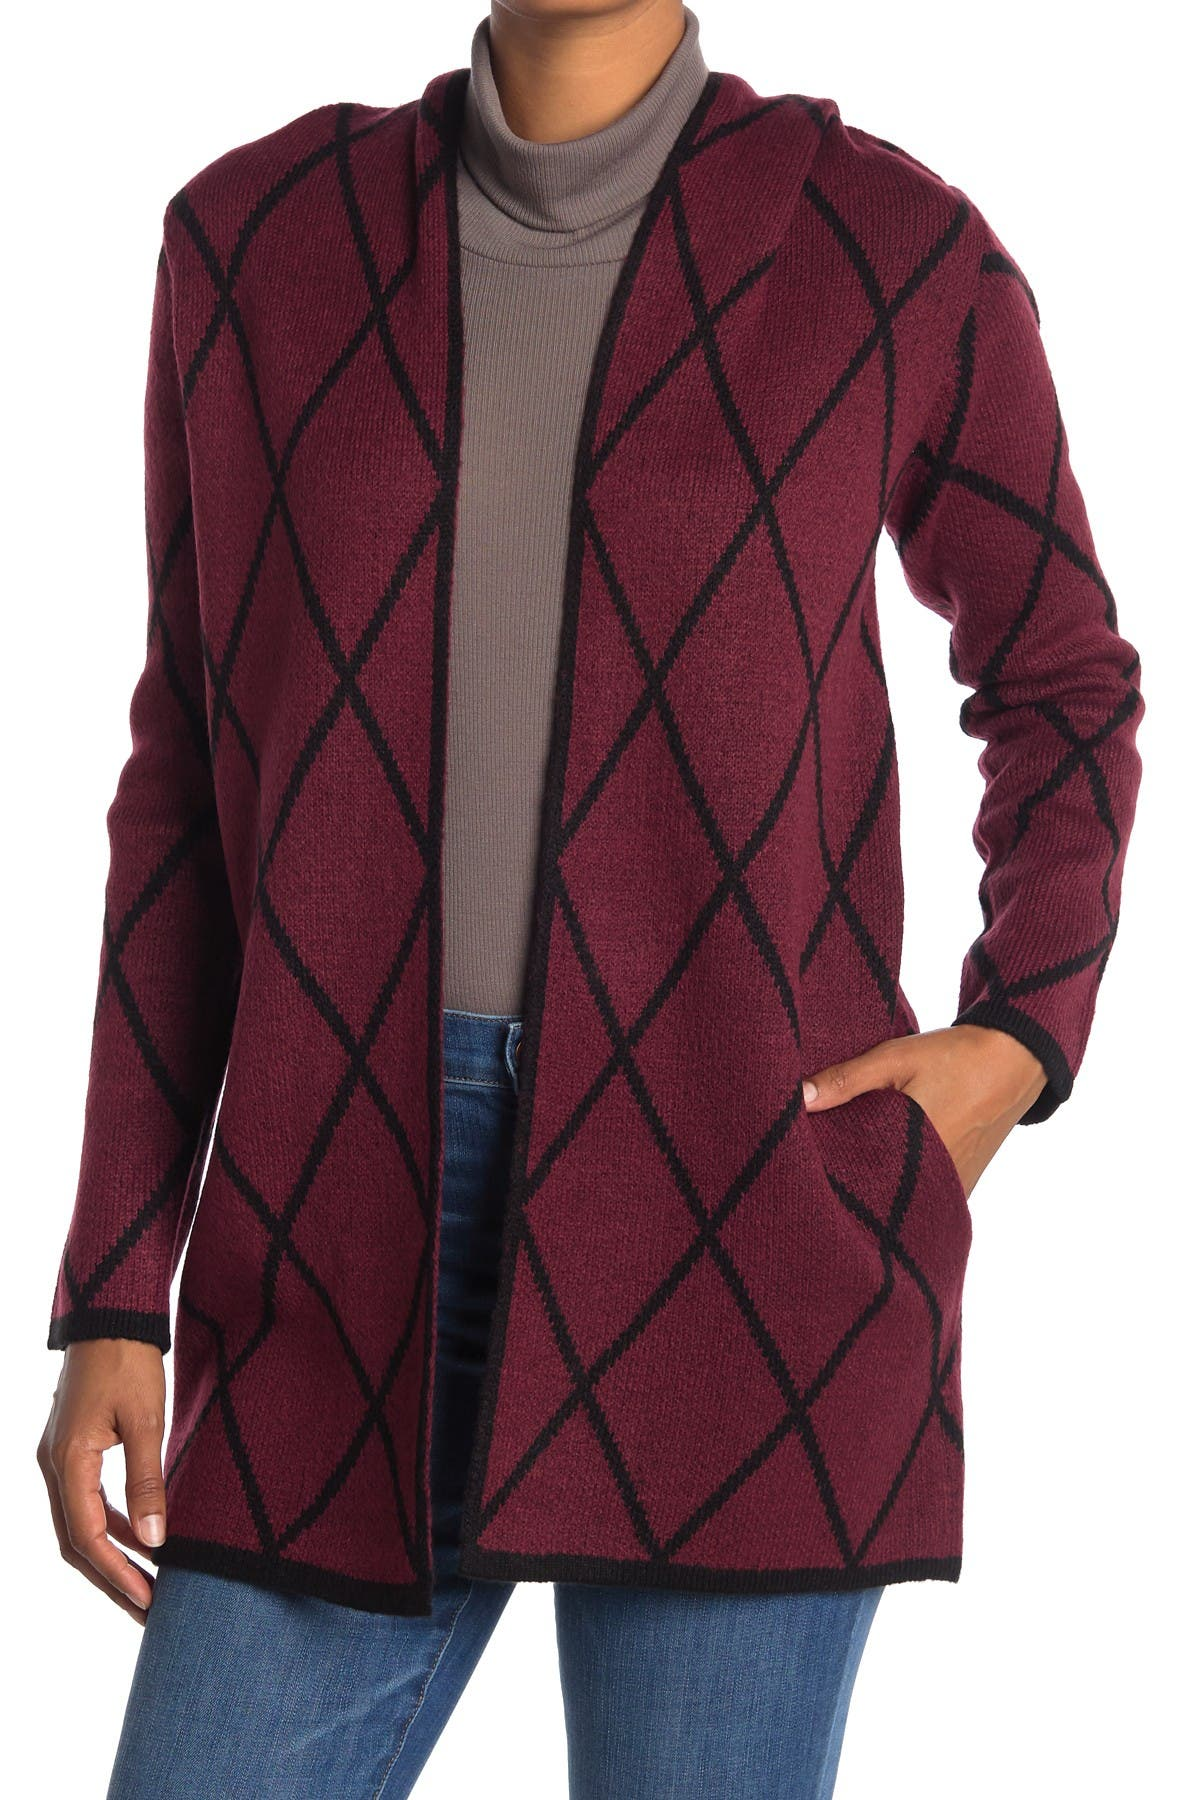 Image of By Design Apollo Hooded Pattern Cardigan